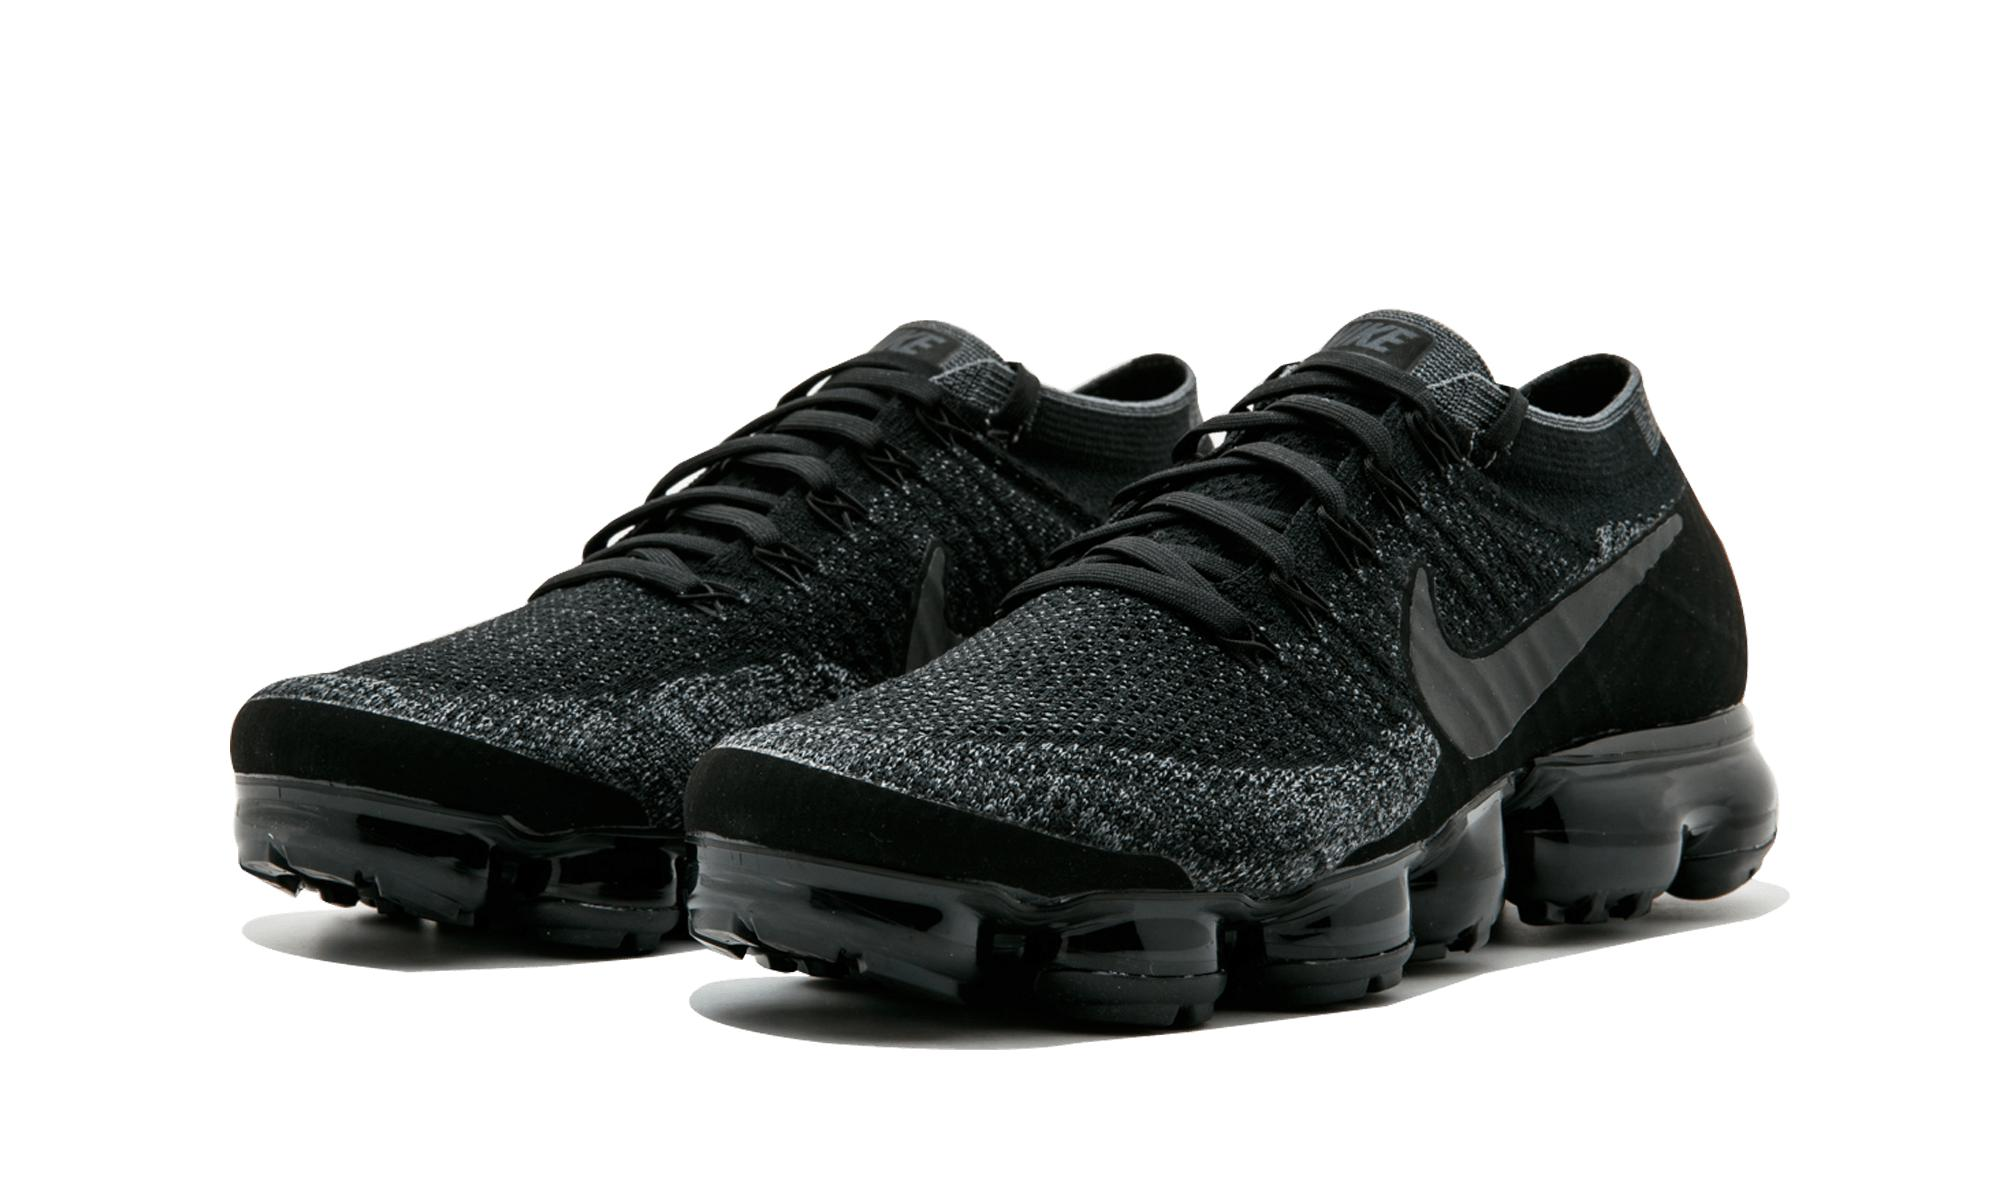 4ee8e97640e3 Flyknit For Lyst Black Lab Nike Save Air In Vapormax Men qI6aq